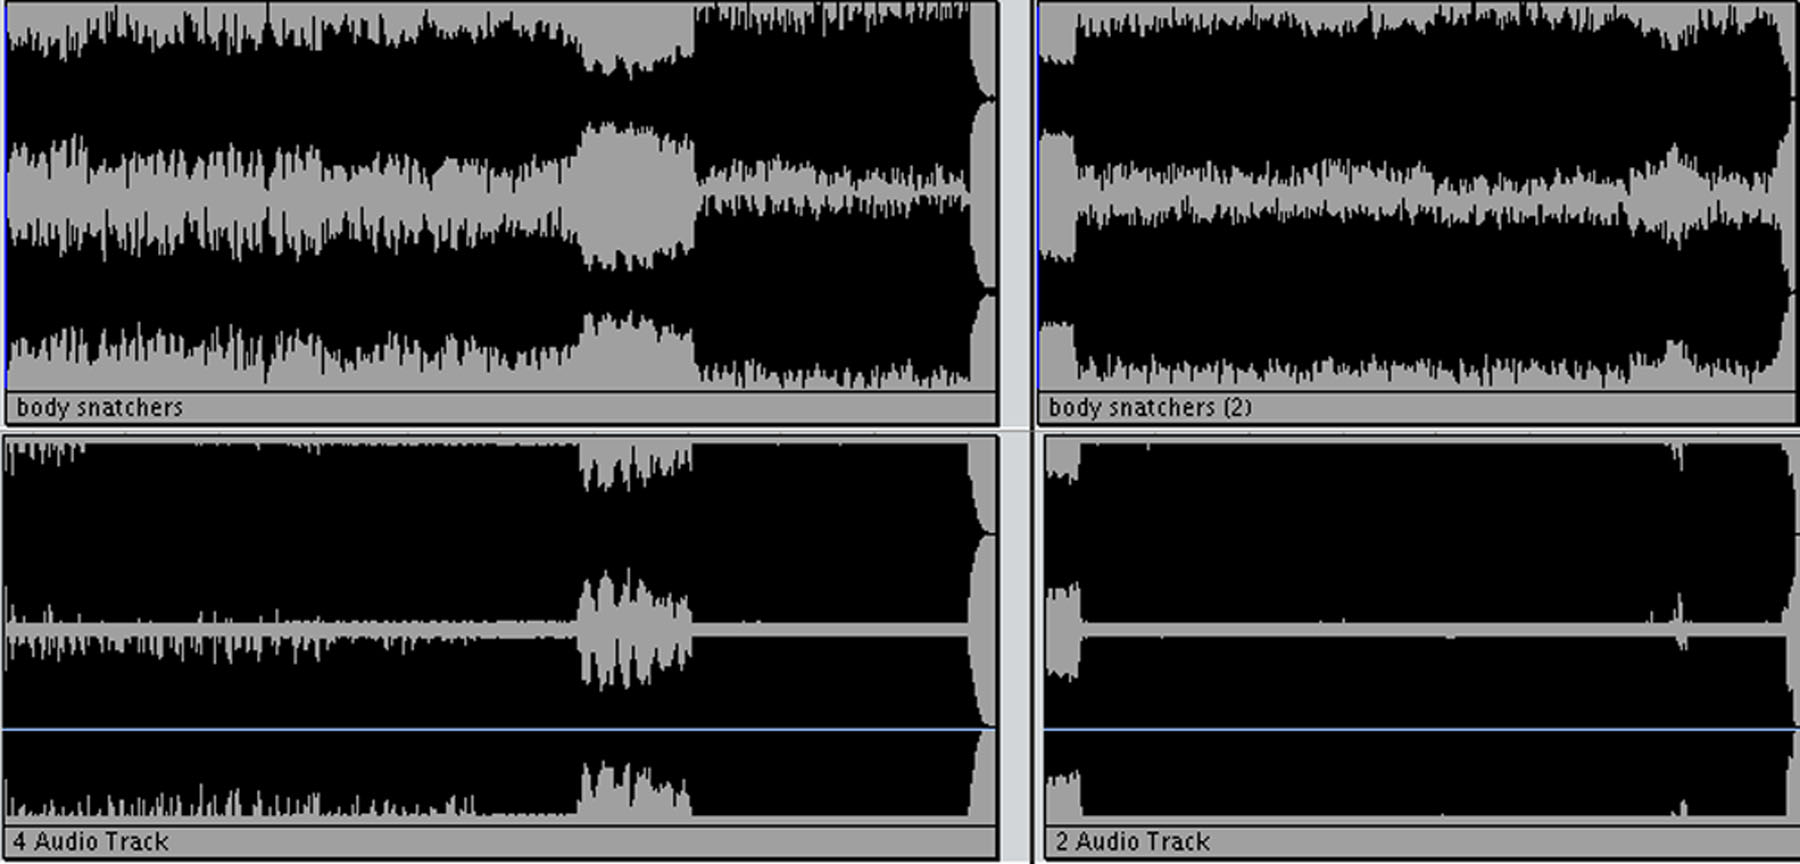 eq before or after effects